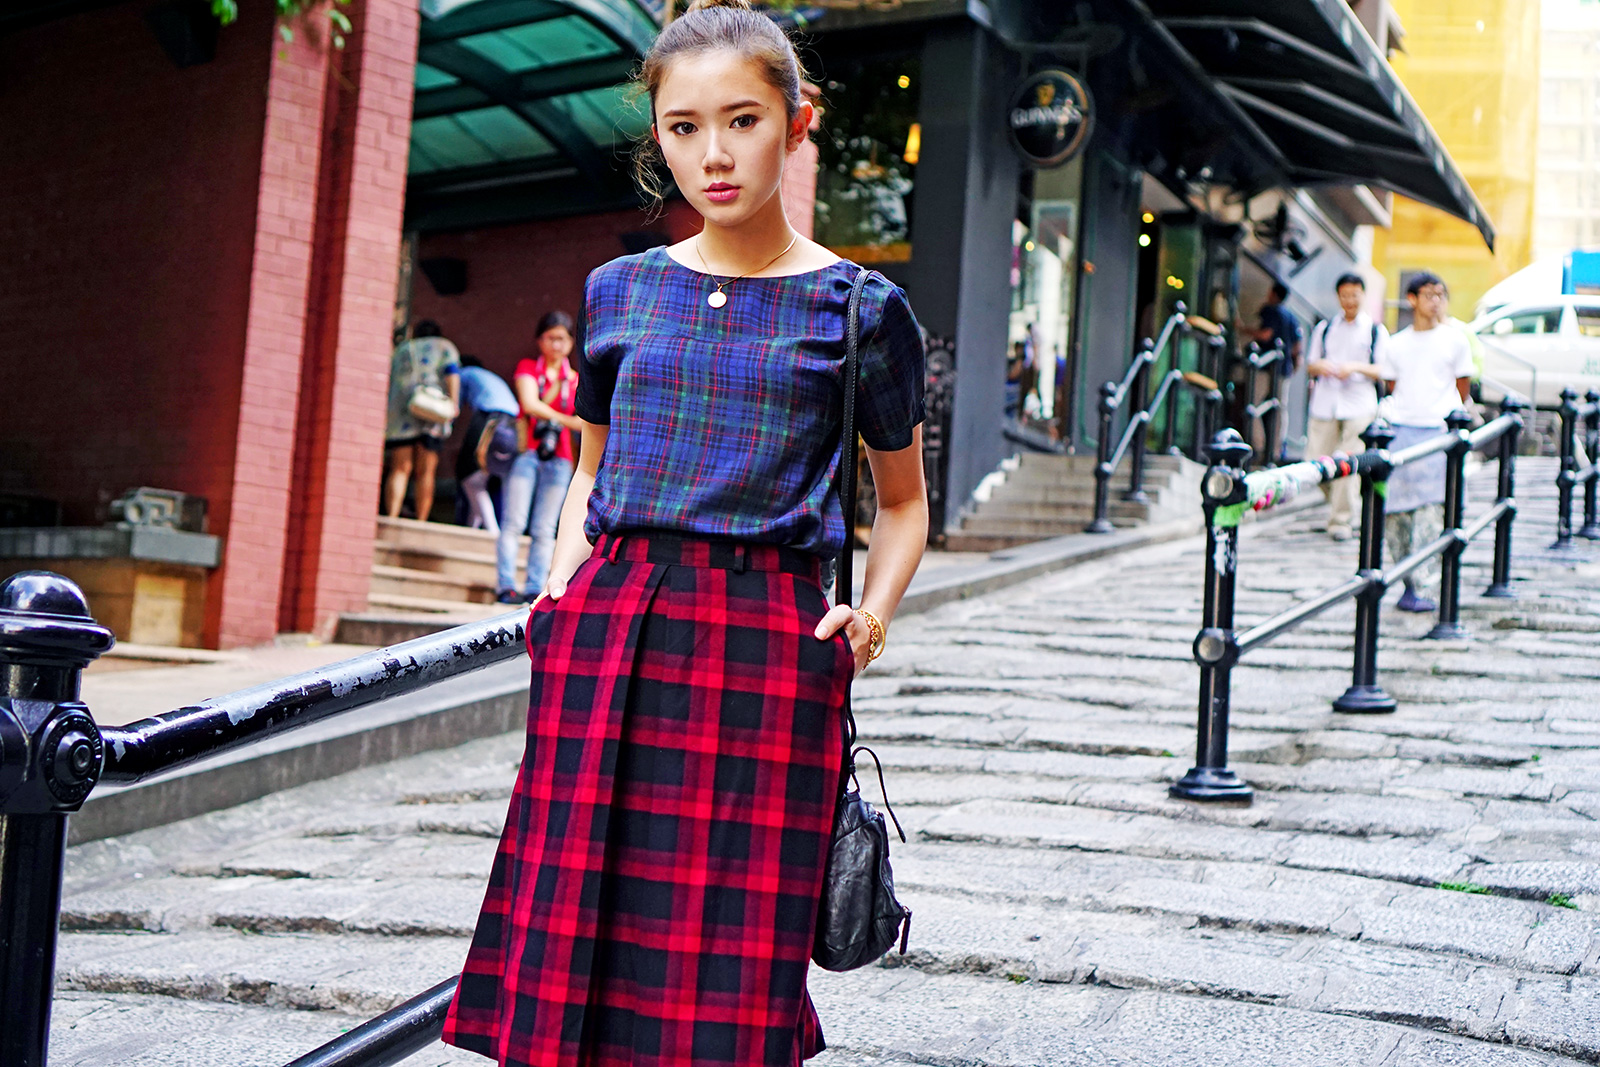 Plaid On Plaid Fashion at Hong Kong By Camille Co